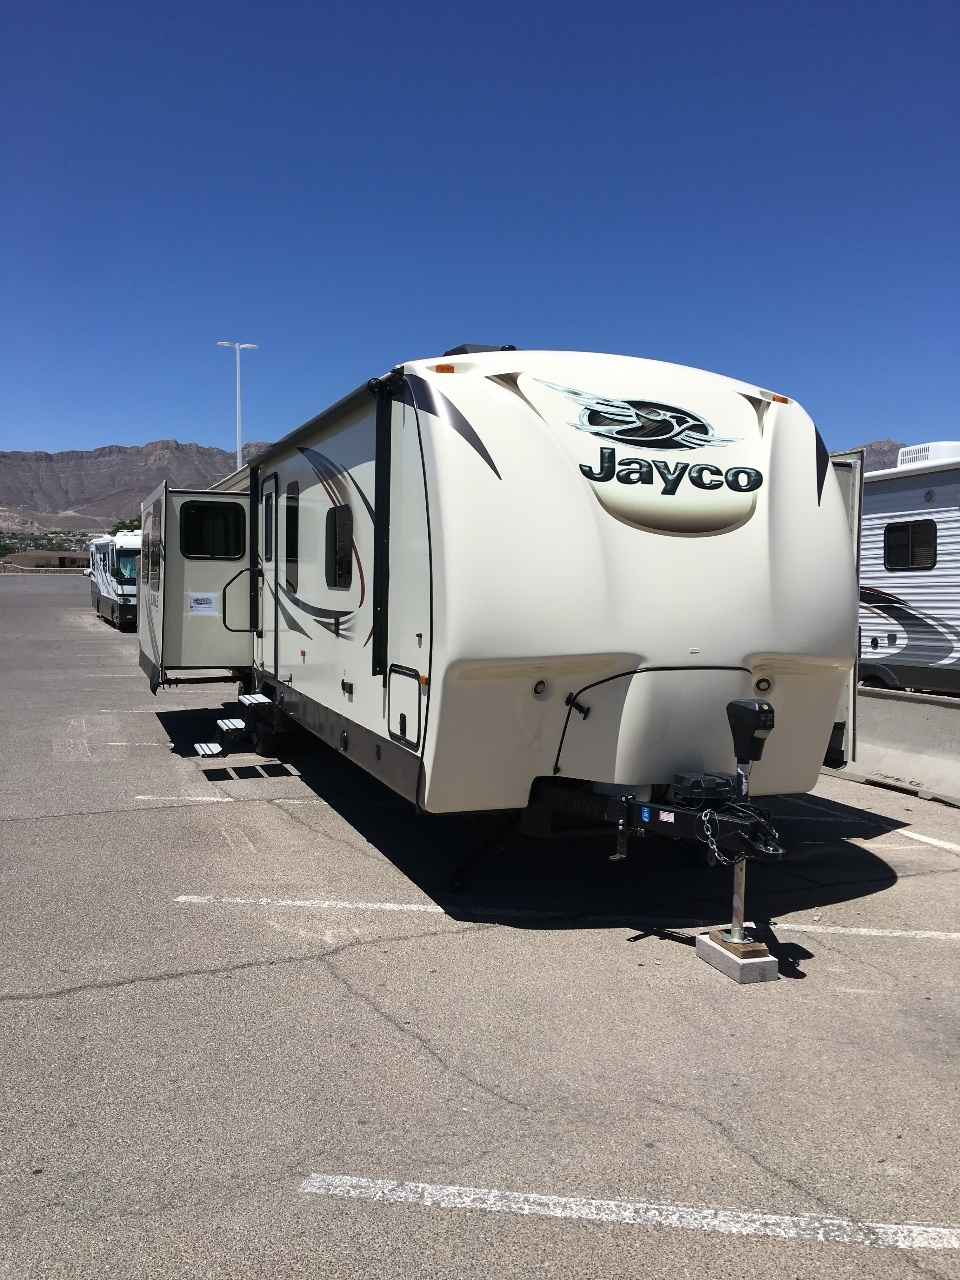 Brilliant At The End Of April, Lewies RV Center Is Expected To Finalize A Sale To Hilltop Trailer  Giese Said Hilltop Trailer Sales, With Its Jayco Line, Will Be Able To Enhance The Offerings In The Brainerd Lakes Area Hilltop Trailer Sales Began With Roy